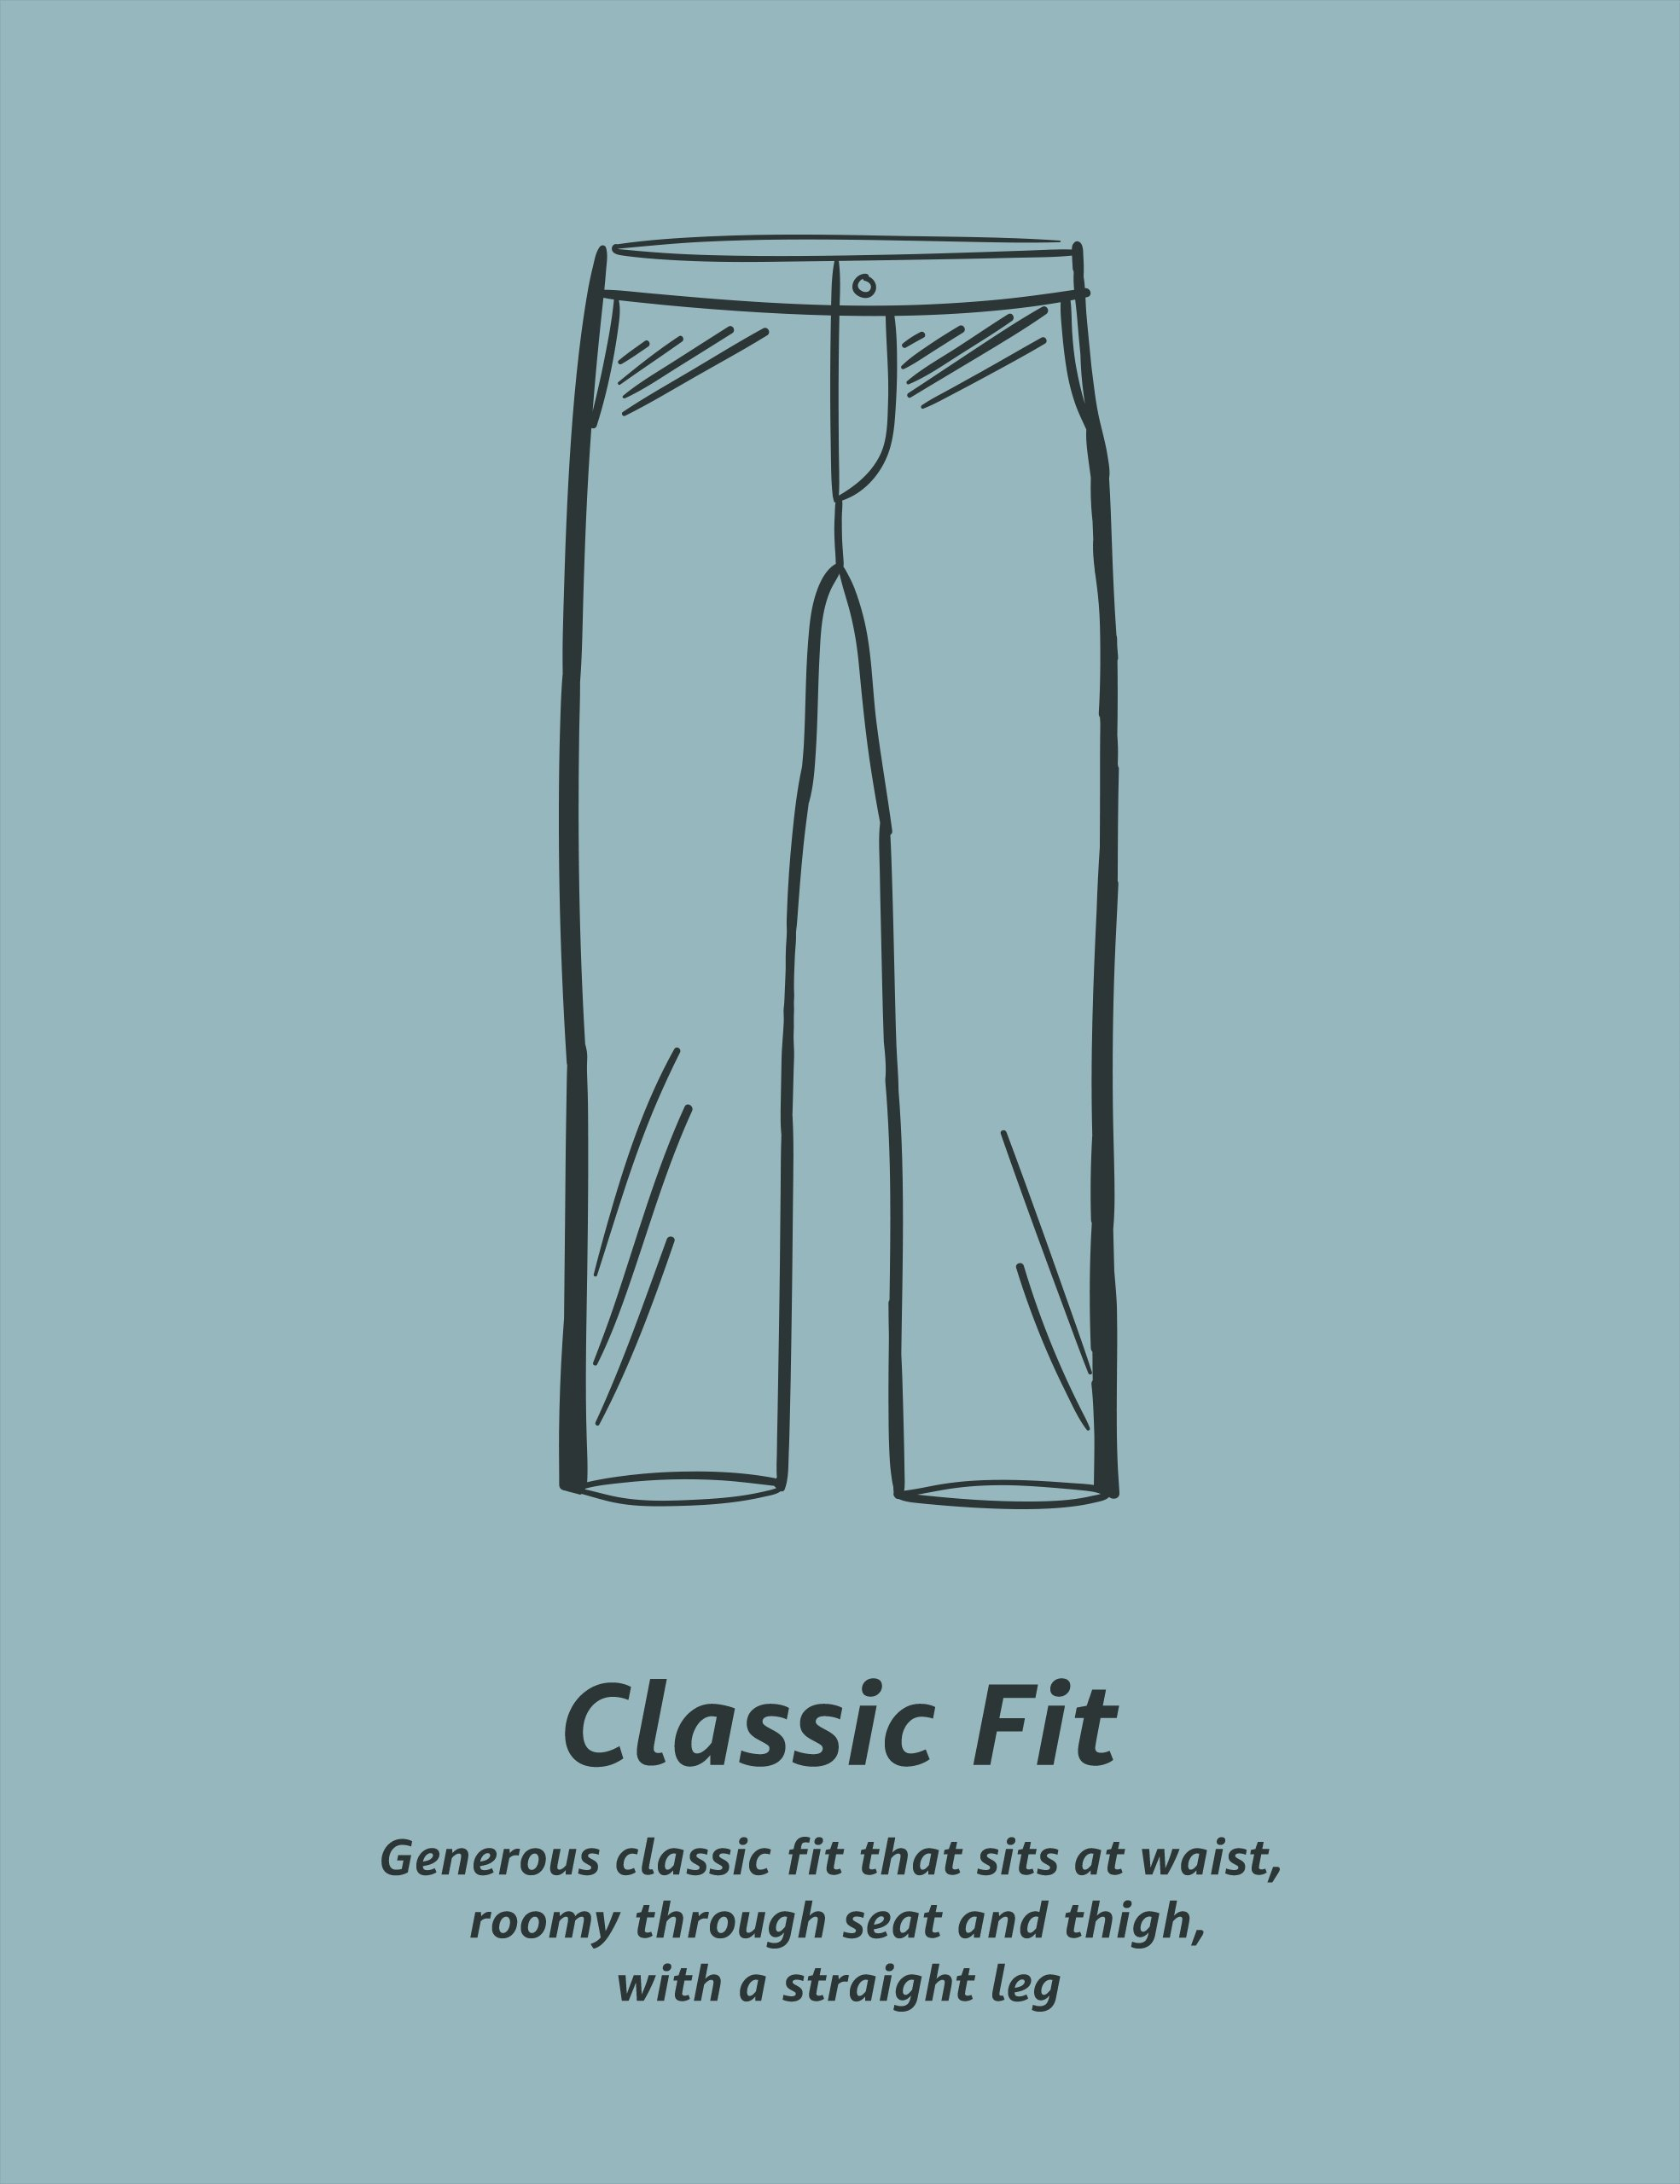 Amazon Essentials Men's Classic-Fit Wrinkle-Resistant Pleated Chino Pant, Olive, 36W x 32L by Amazon Essentials (Image #6)